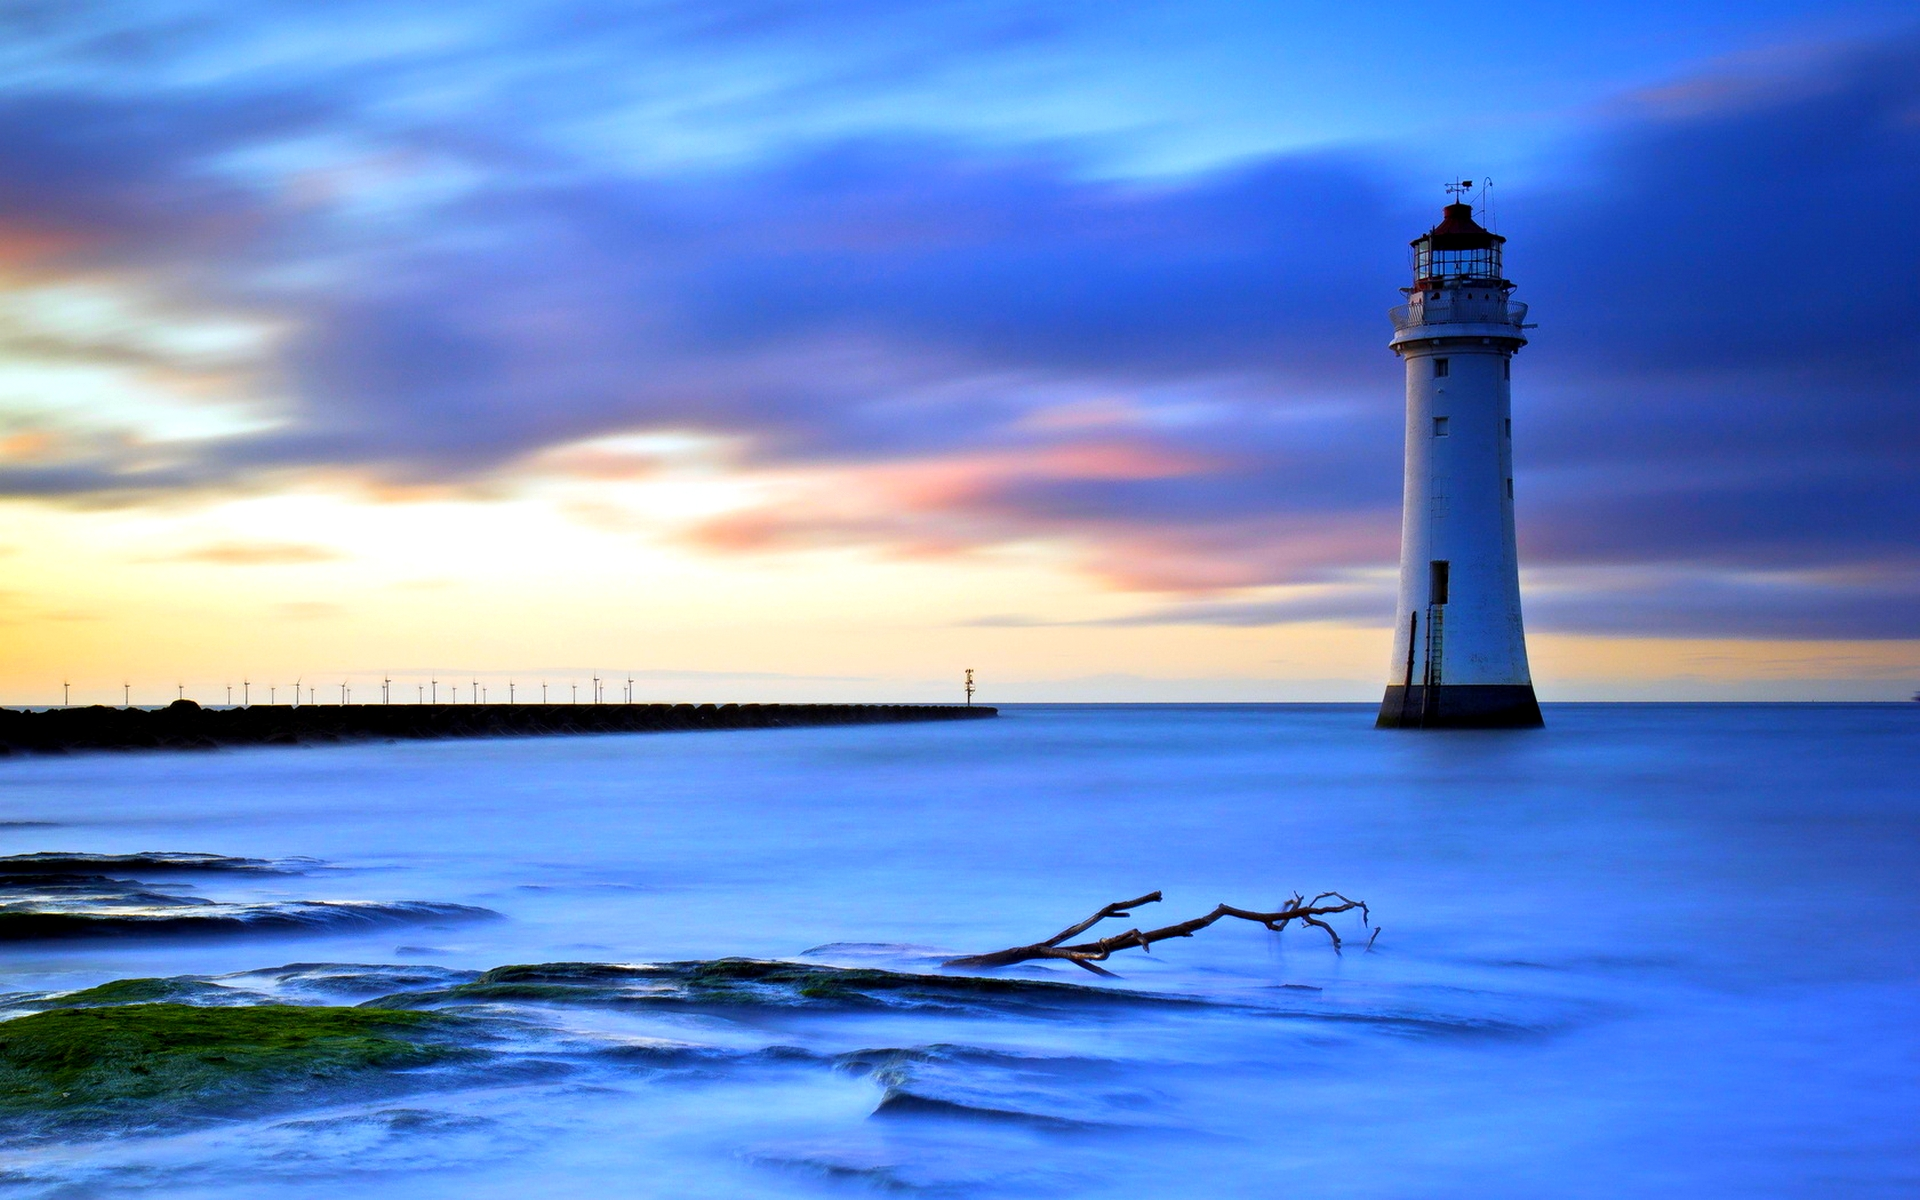 Lighthouse Backgrounds   Wallpaper High Definition High Quality 1920x1200